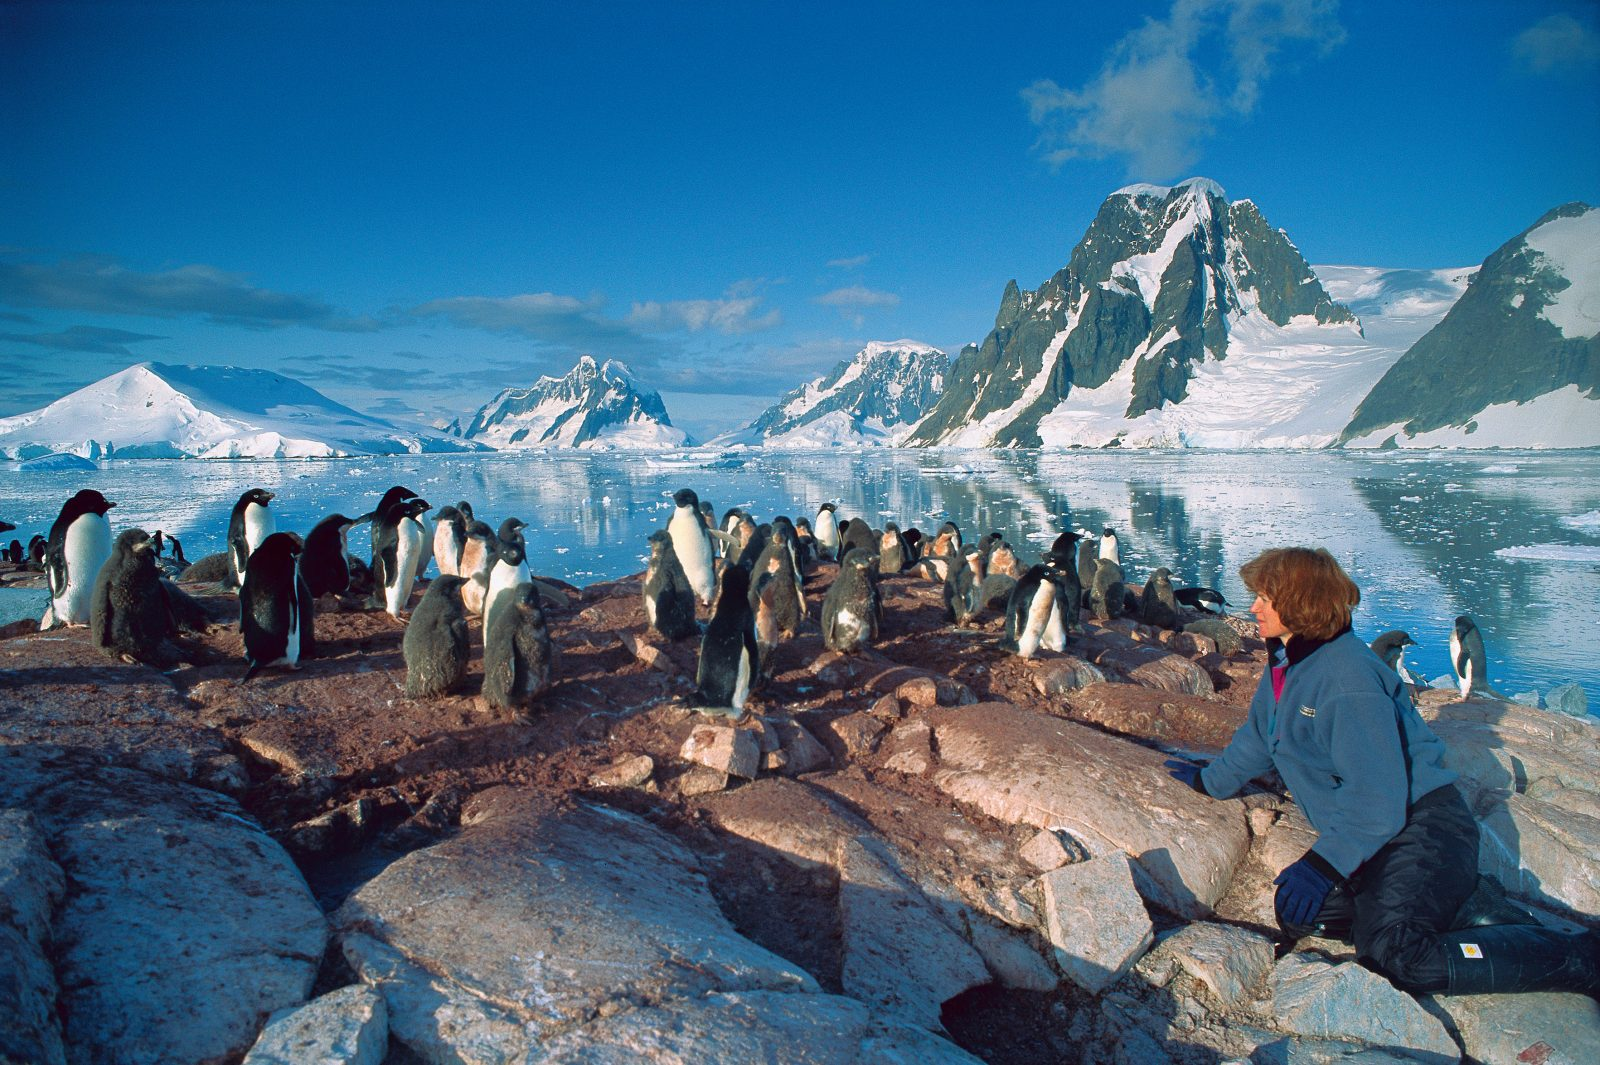 One of the most visited spots in Antarctica, Petermann Island has changed significantly in recent years, with Adelie penguin numbers declining rapidly and gentoo penguins replacing them.